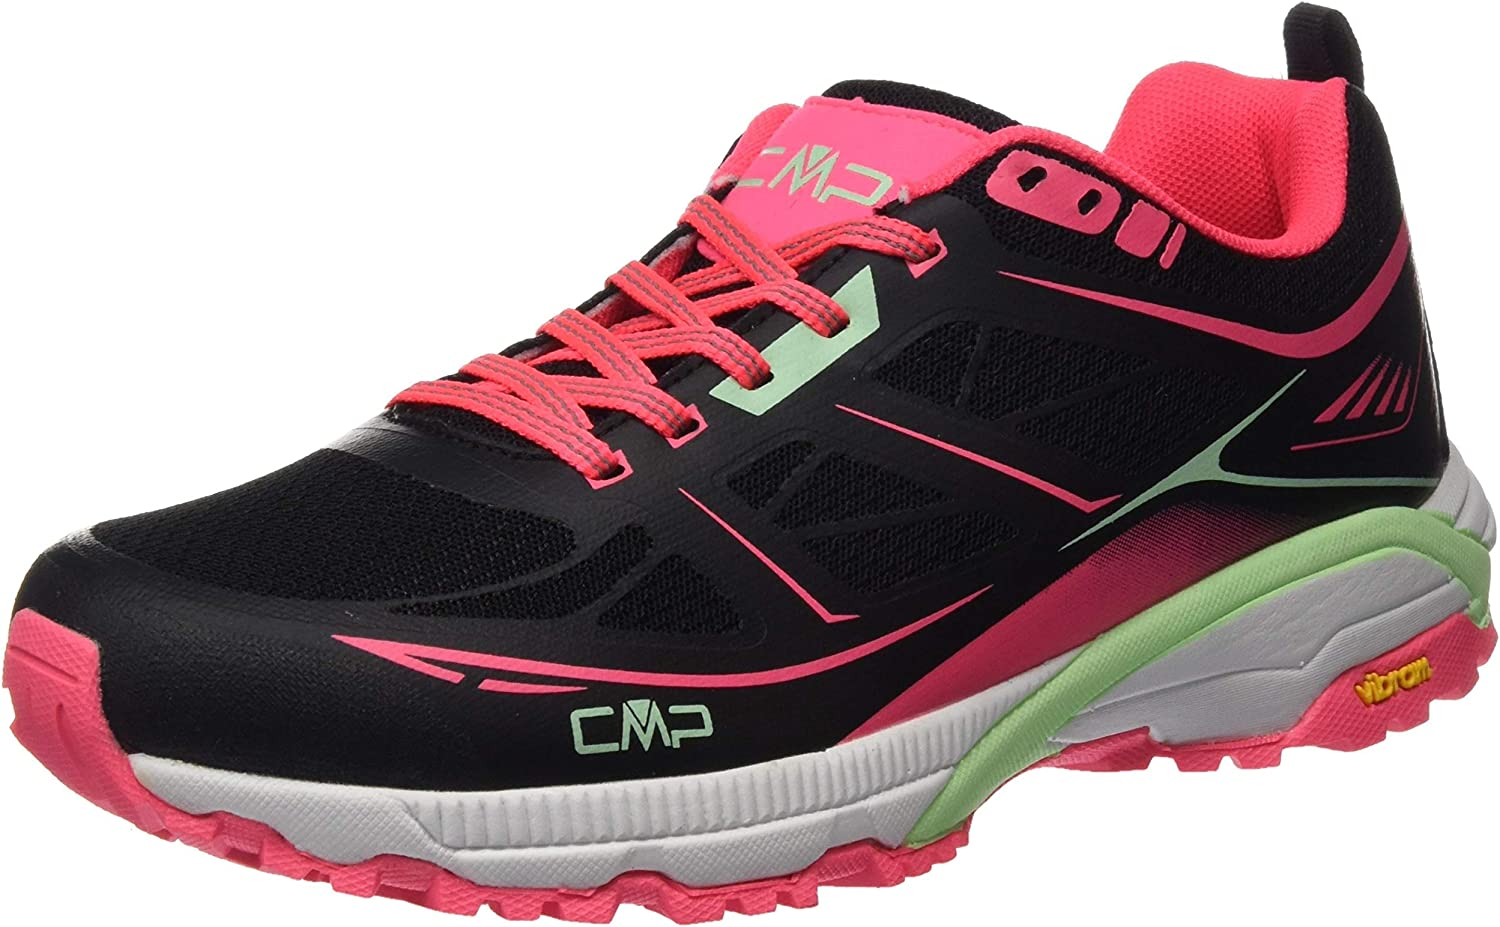 CMP - F.lli Campagnolo Popular brand in the world Cross 2021new shipping free shipping Trainers Women's